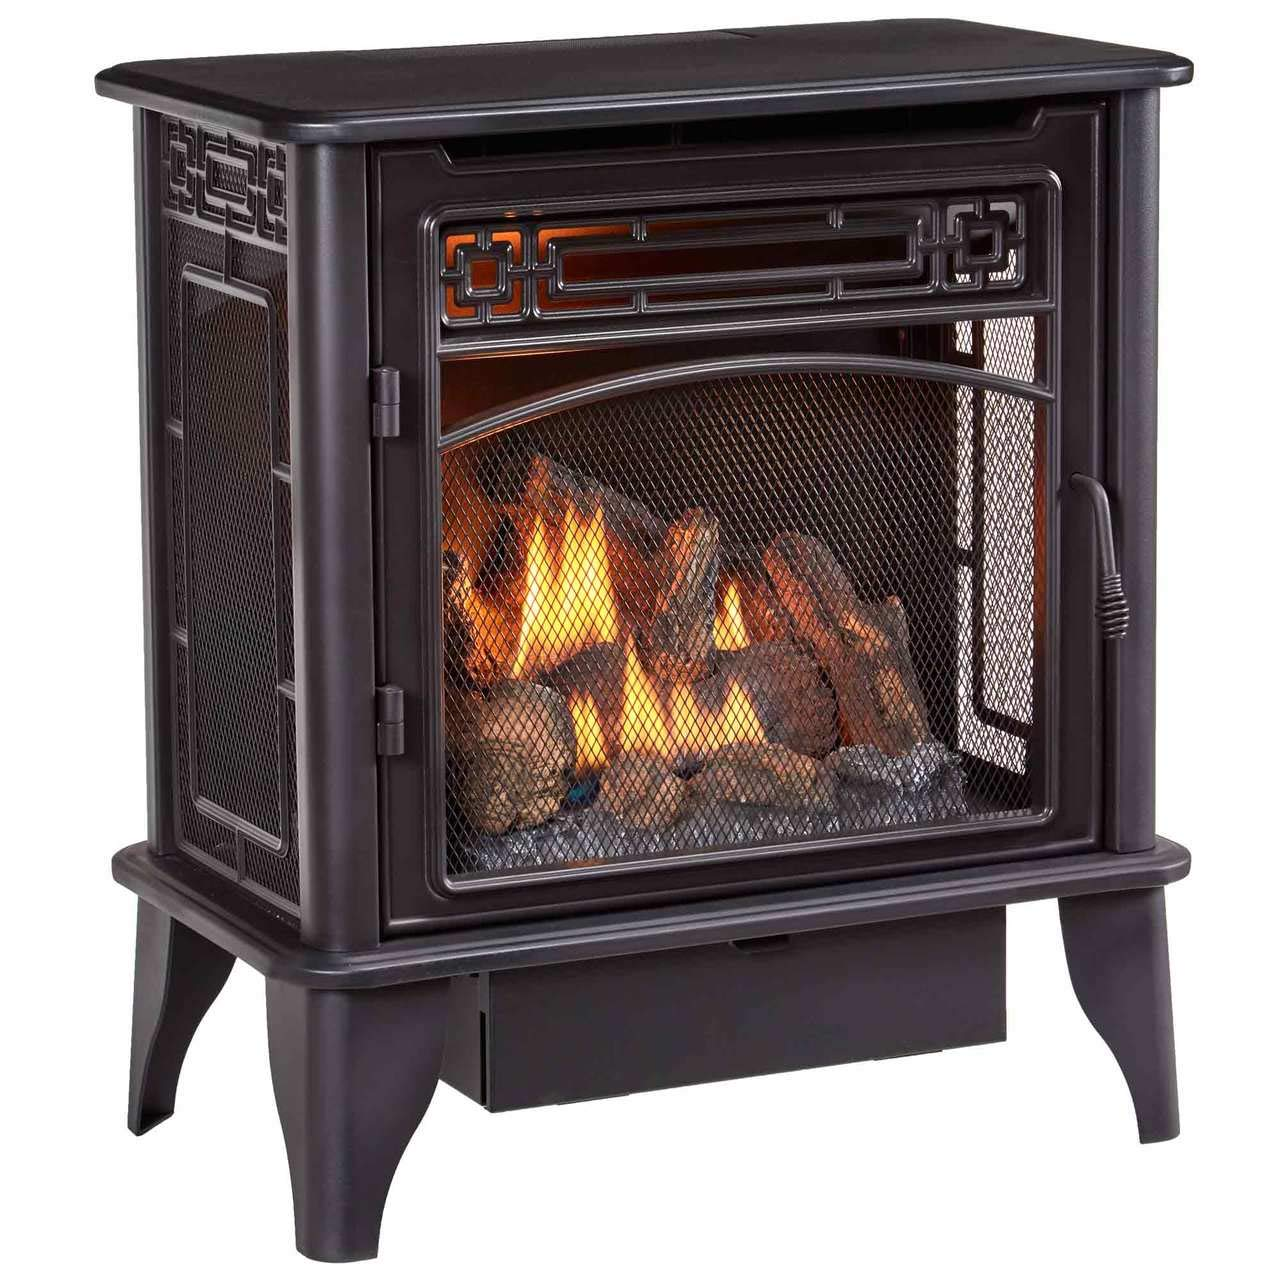 ProCom PCNSD25RTA Gas Stove 3-Sided Black Dual Fuel with Remote Control, 23,000 BTU, Vent-Free by ProCom